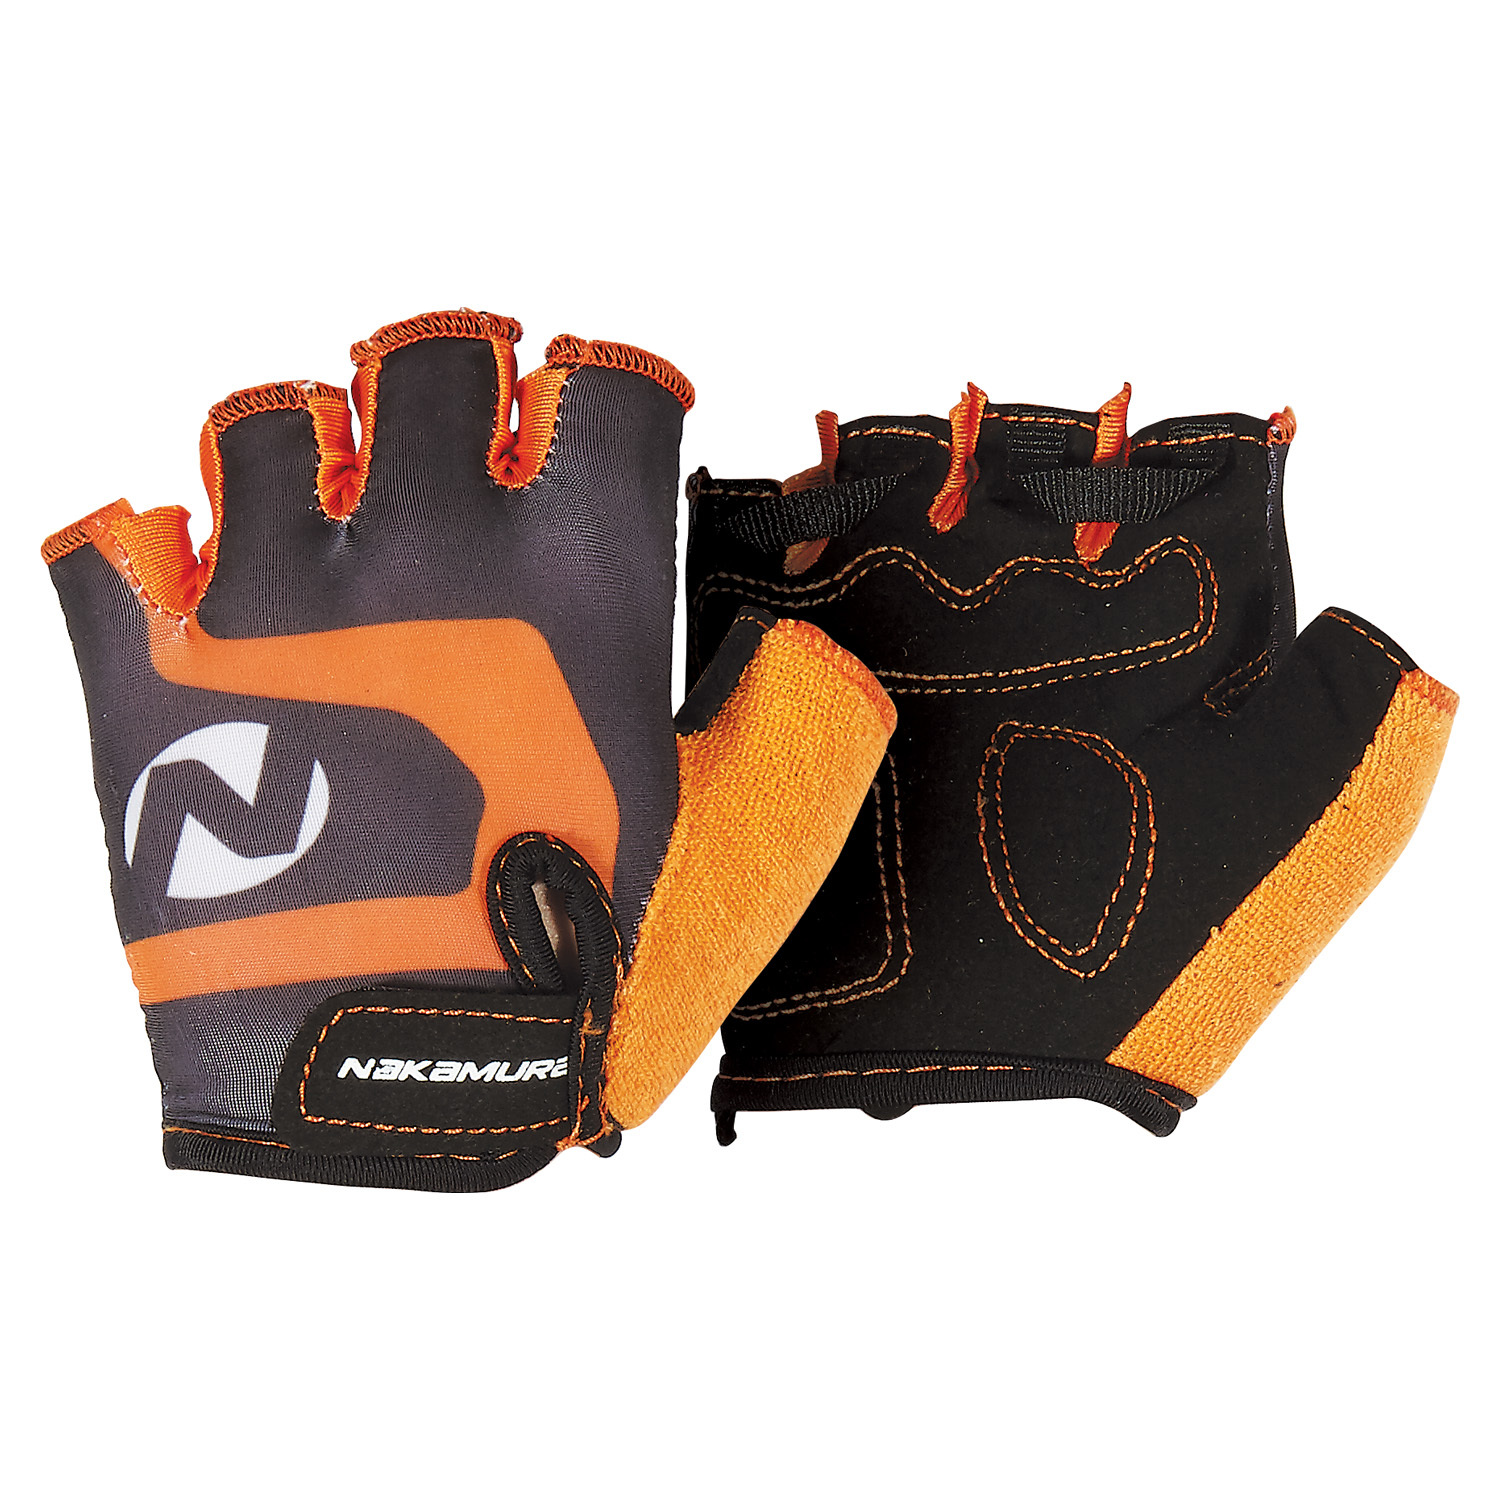 Lill Sport Gloves Canada: Helmets And Gloves